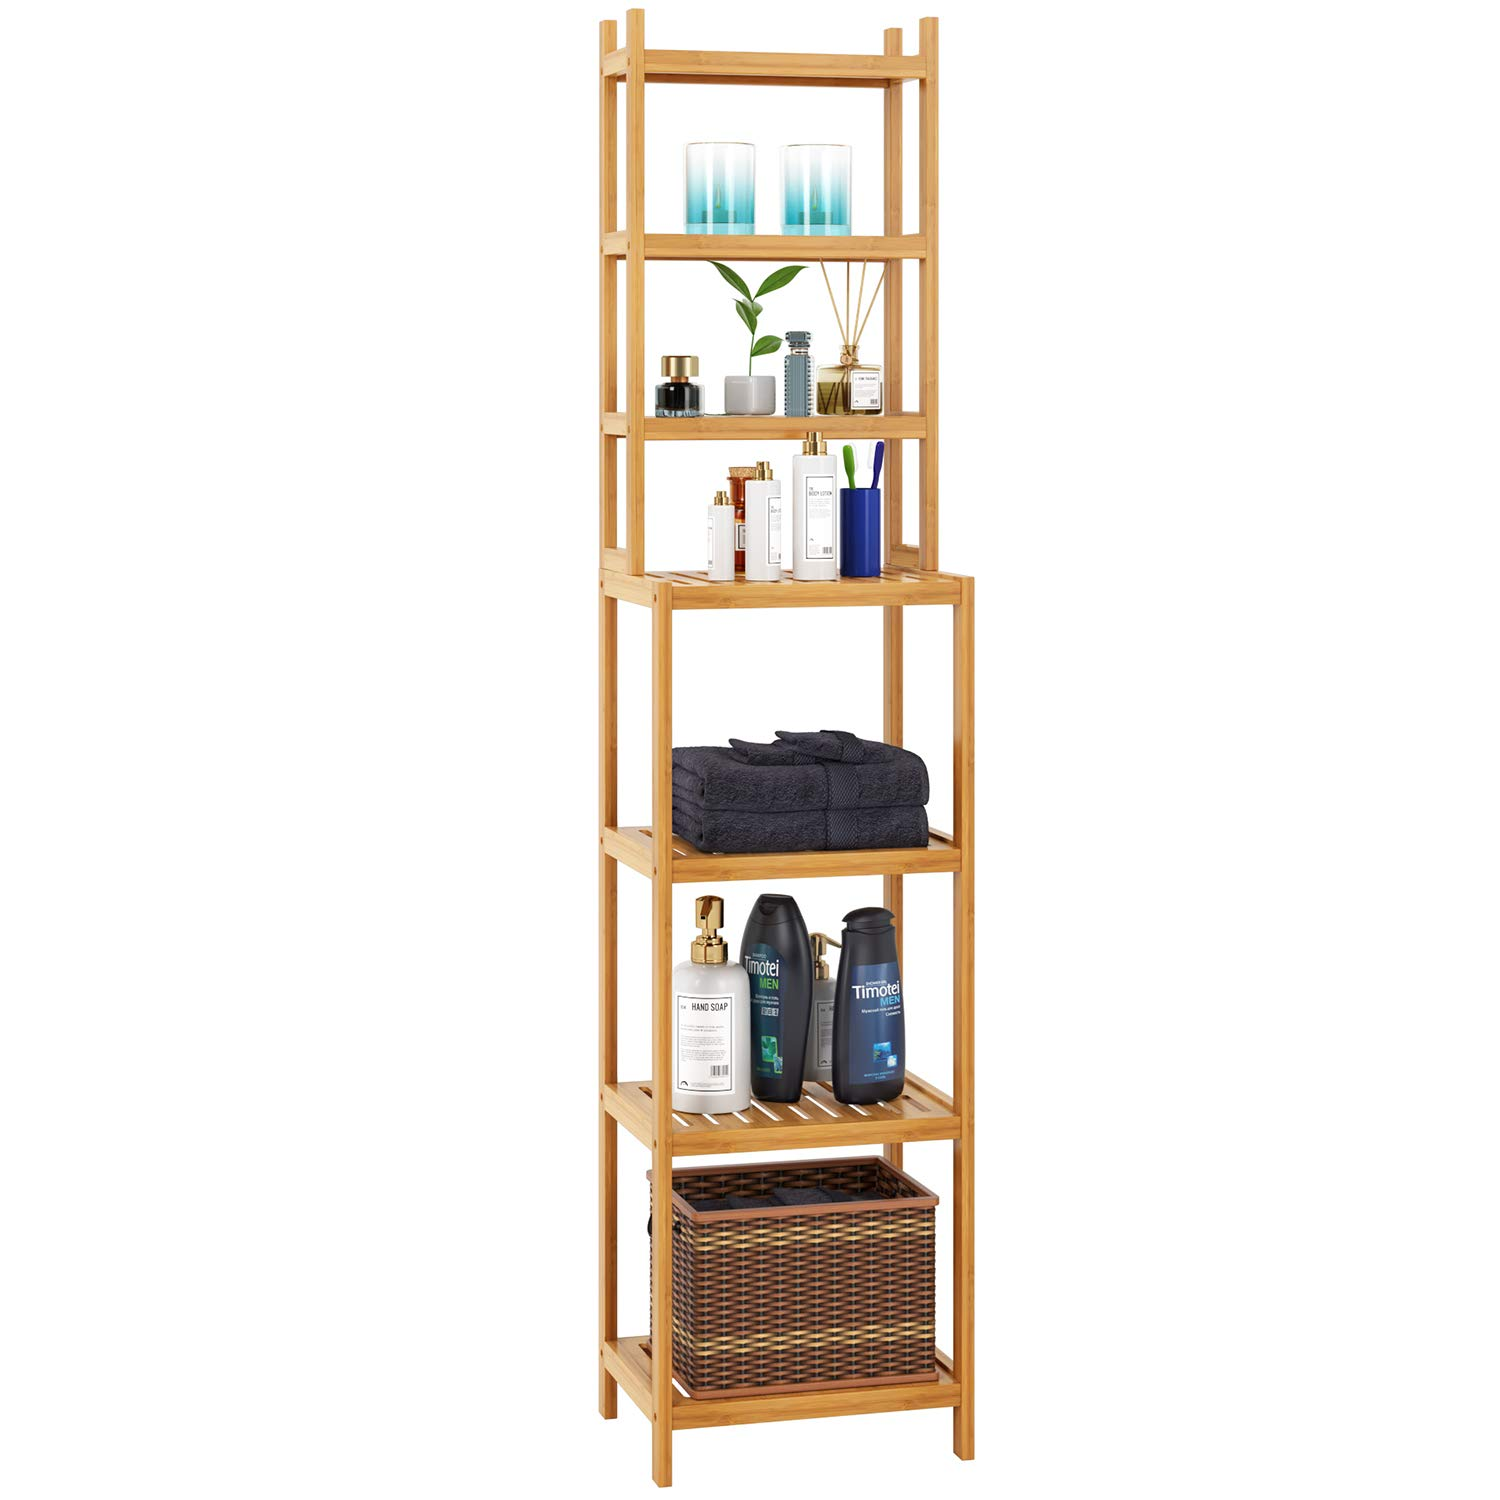 Homfa Bamboo Bathroom Shelf 7-Tier Tower Free Standing Storage Organizer Rack, Multifuntional Utility Shelf, Natural